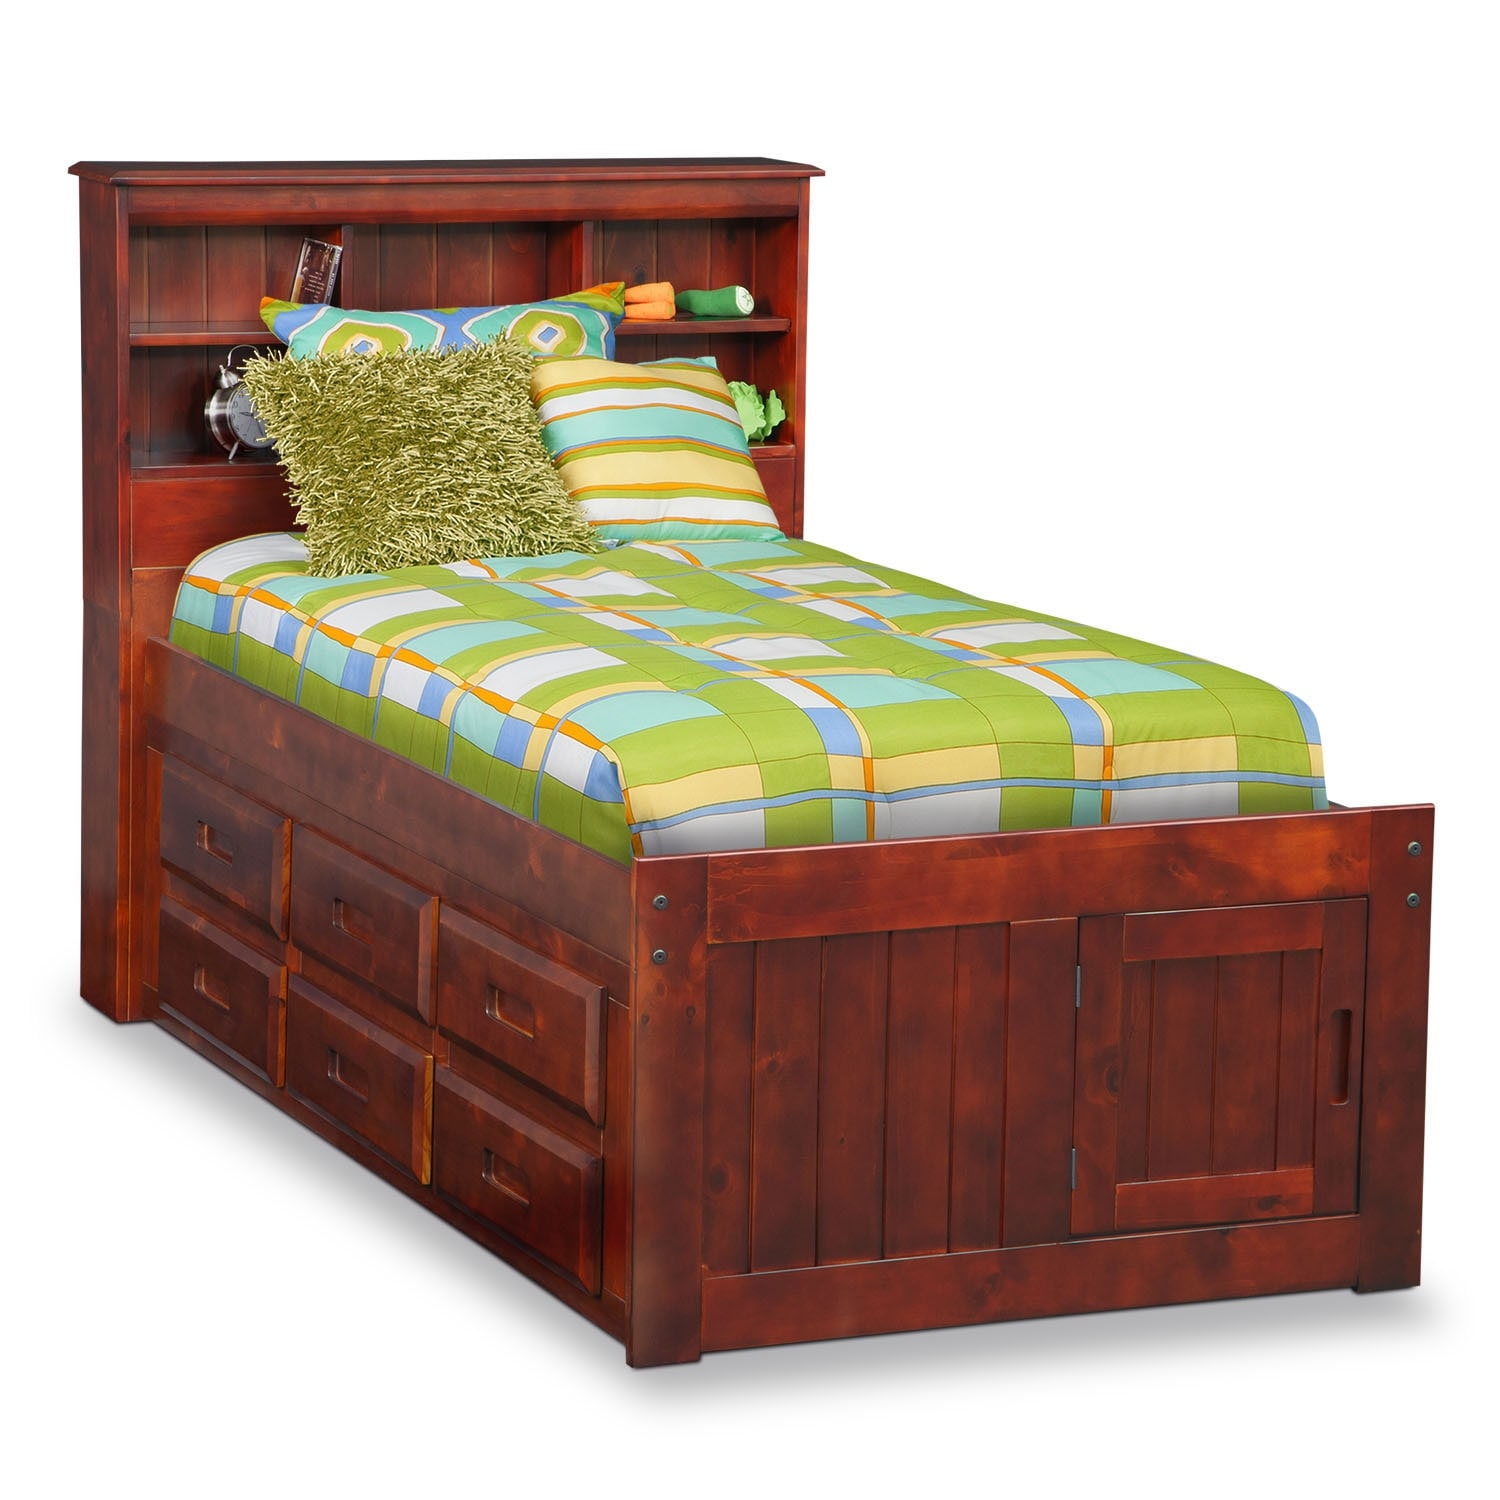 twin with bedroom drawer thomas by drawers youth bed packages storage suite sophia cole designs